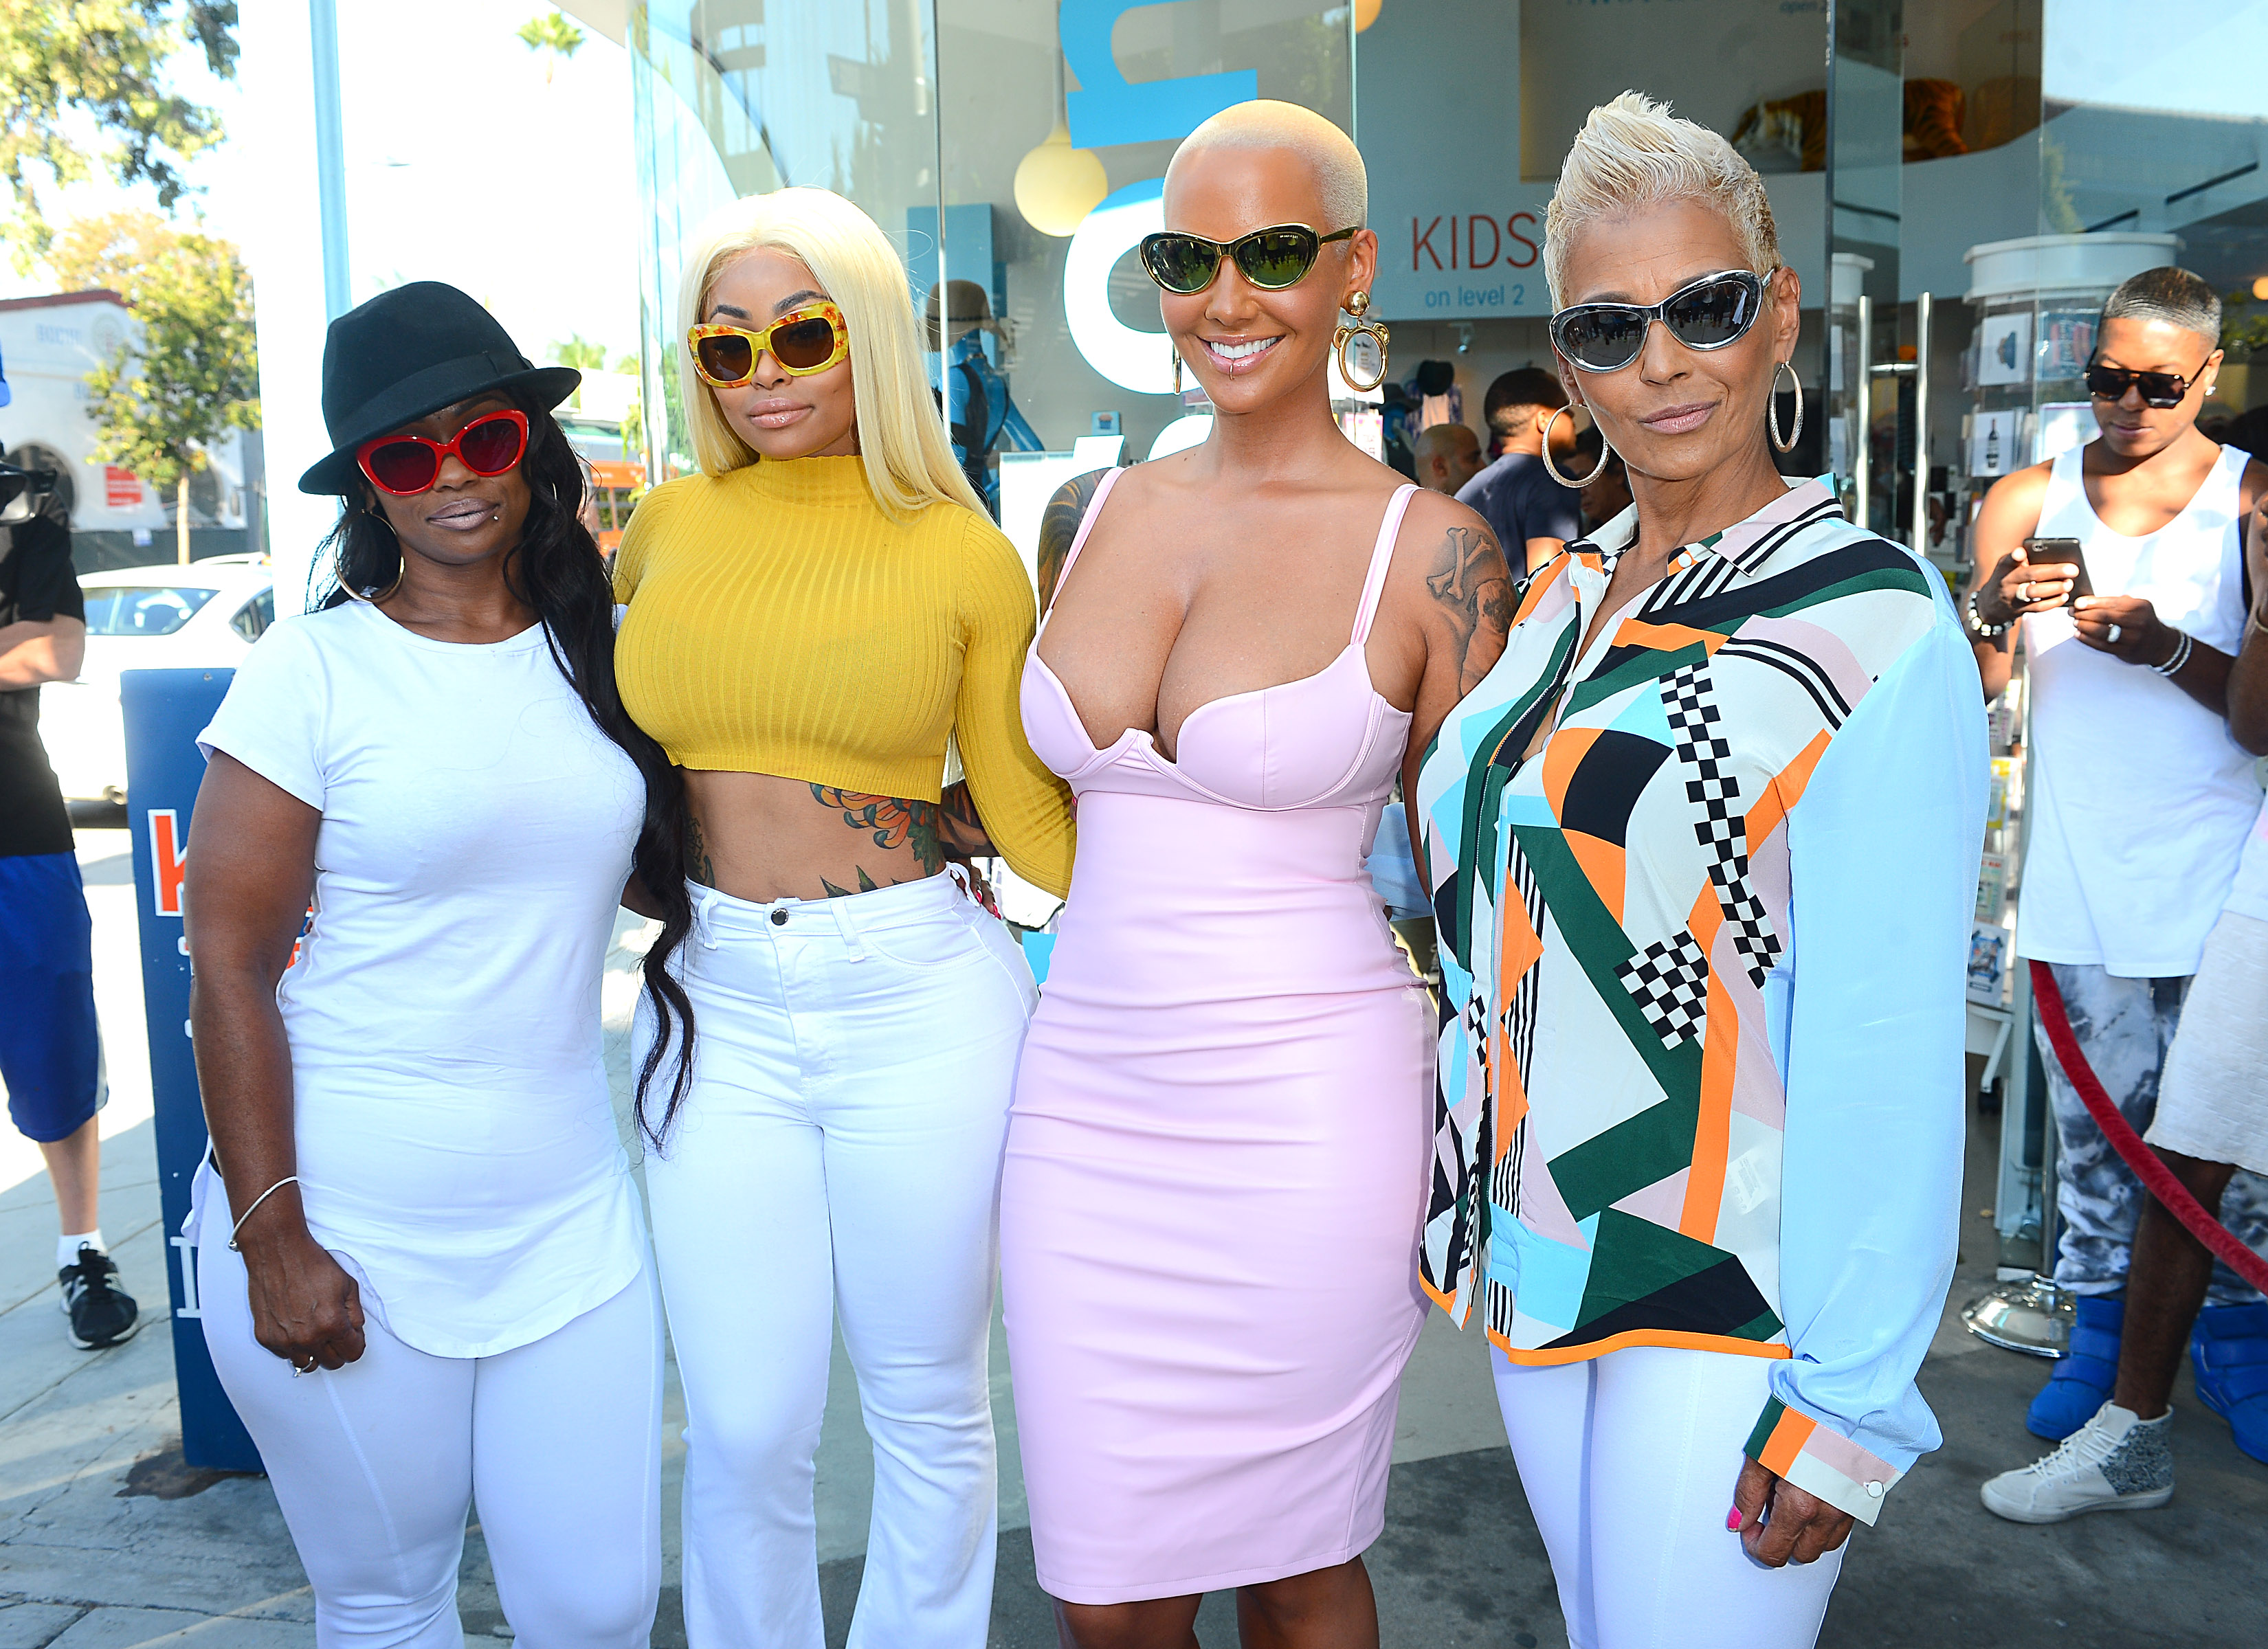 blac chyna and Amber Rose with their moms Launches Her Eye Glass Collection The Bash at Kitson